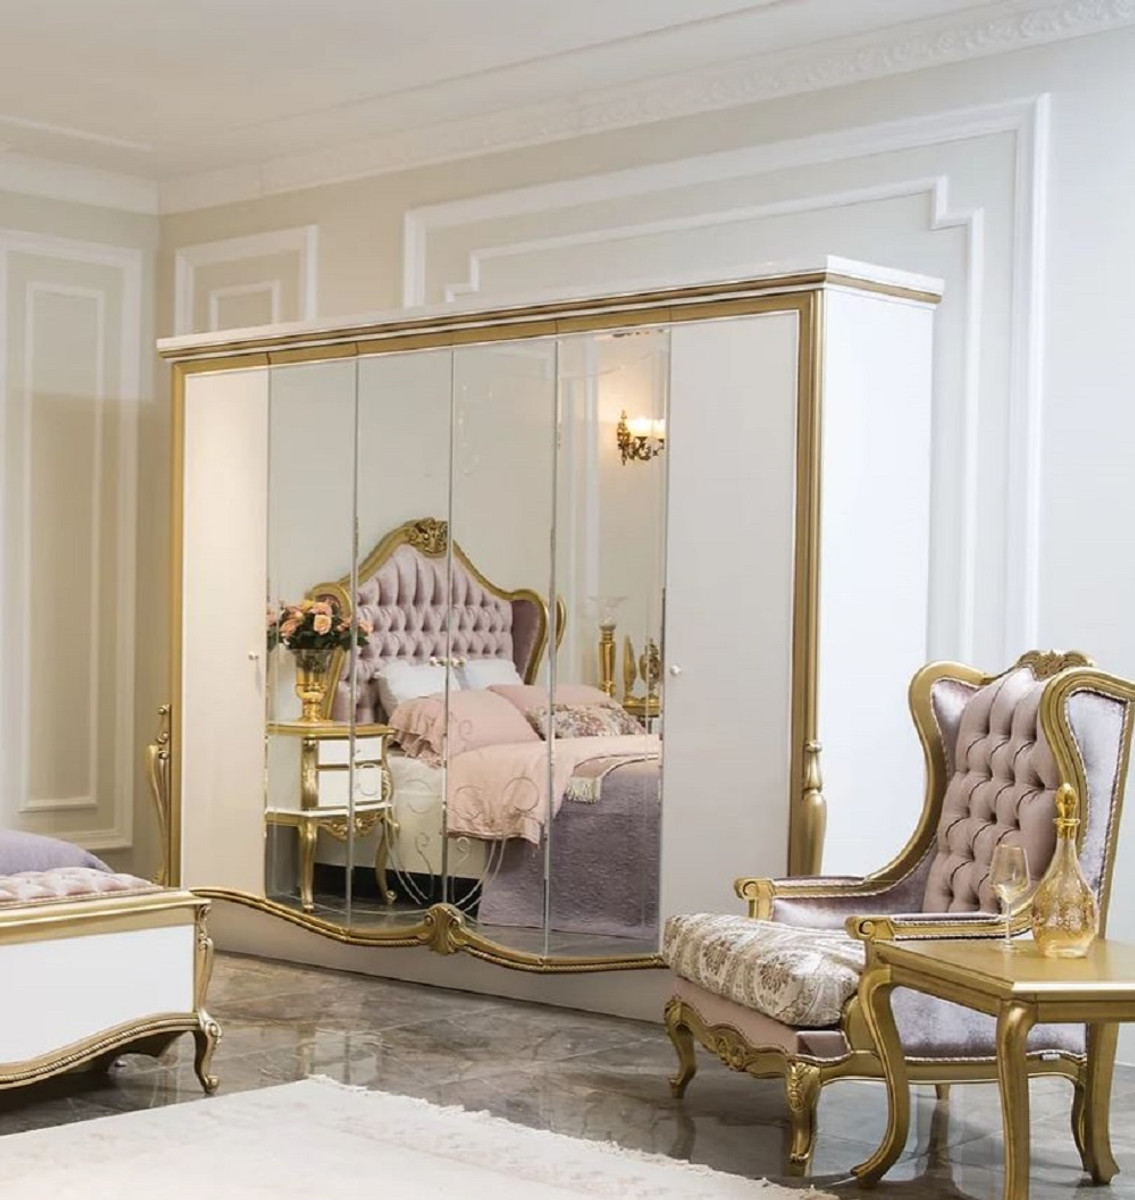 Casa Padrino Luxury Baroque Bedroom Cabinet White Gold 270 X 70 X H 224 Cm Noble Solid Wood Wardrobe Bedroom Furniture In Baroque Style Luxury Quality